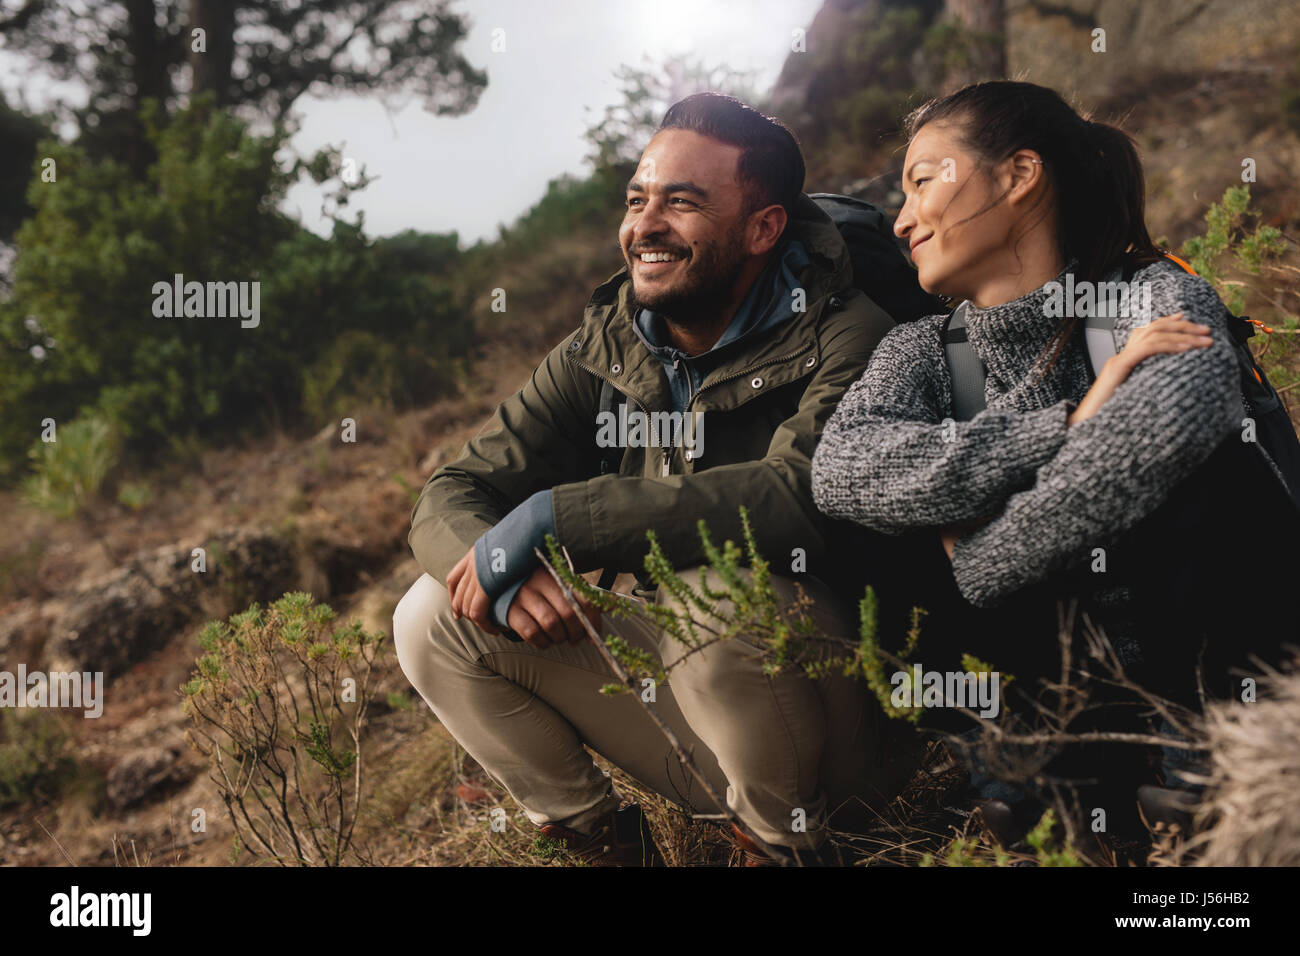 Young couple out on hike in mountains. Relaxed young man and woman sitting on country path. - Stock Image